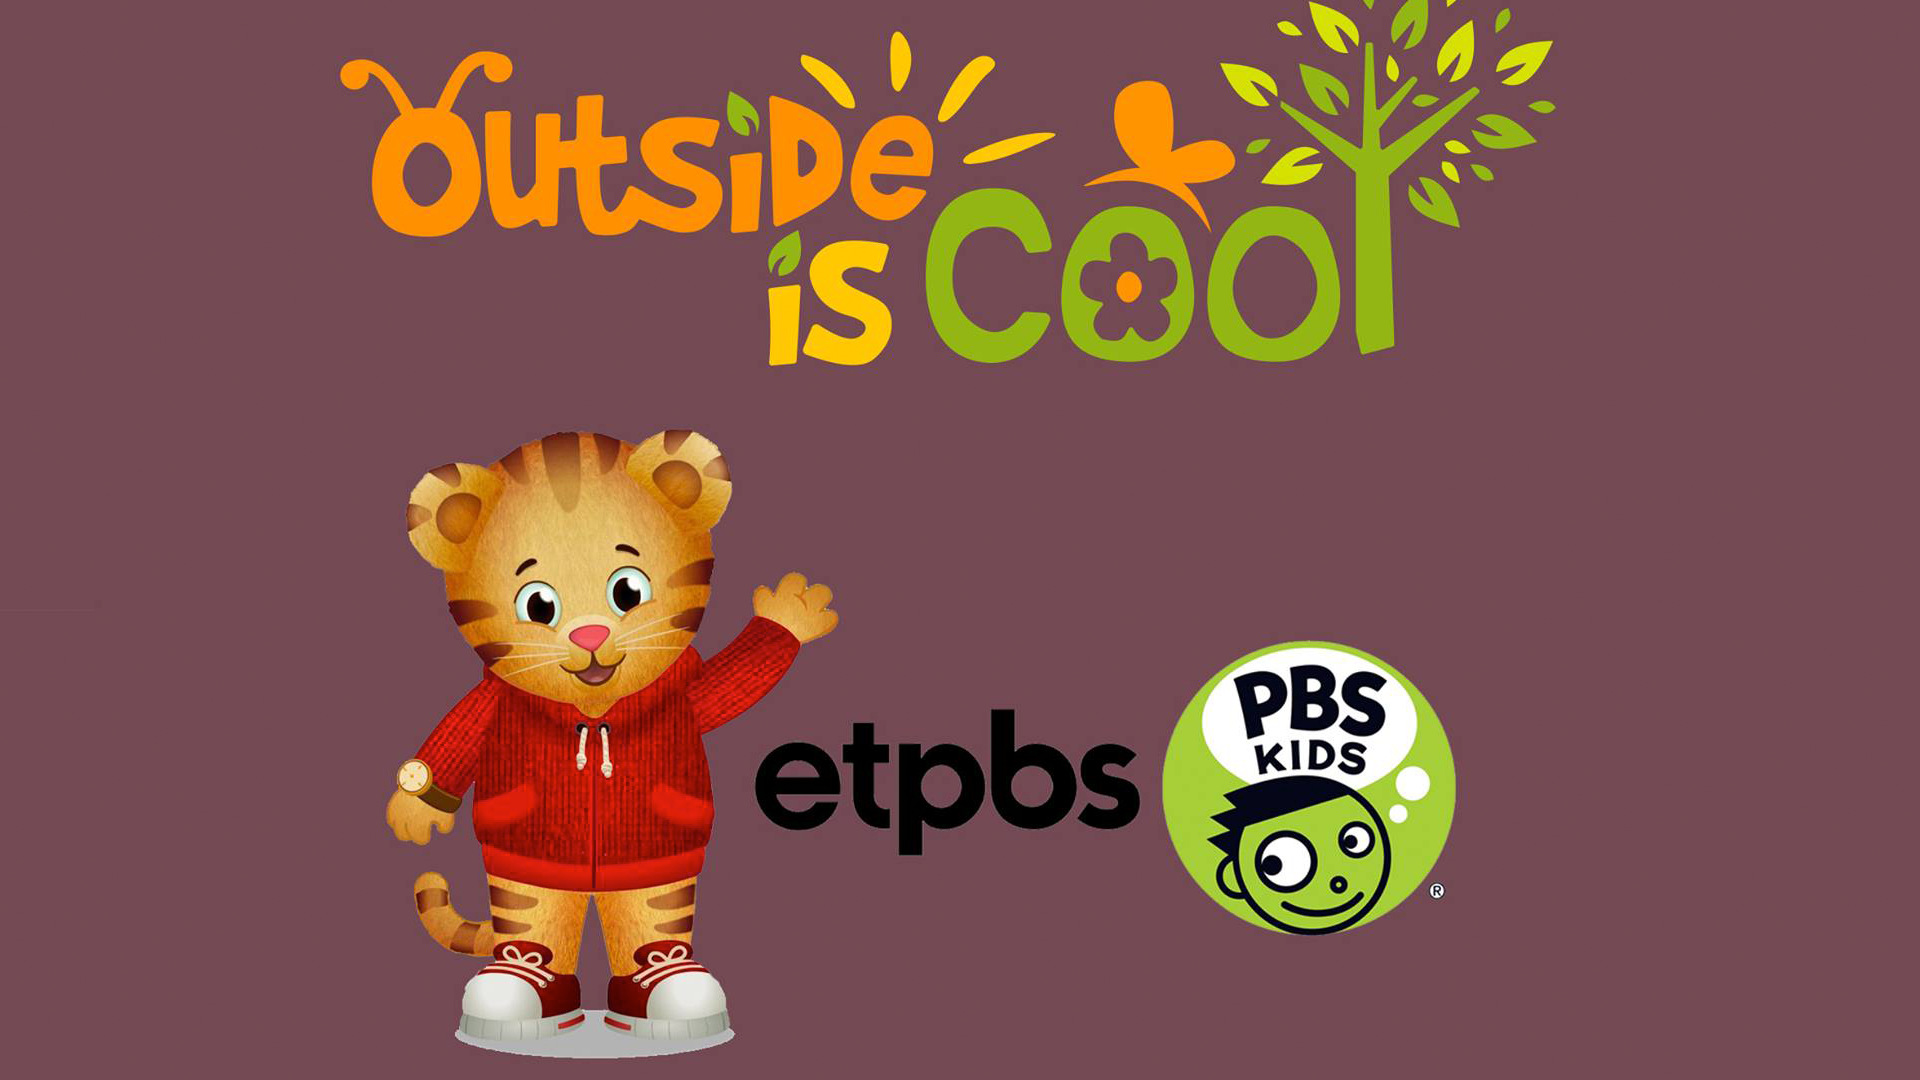 Join East Tennessee PBS Saturday, October 14 for a Special Day of Fun!